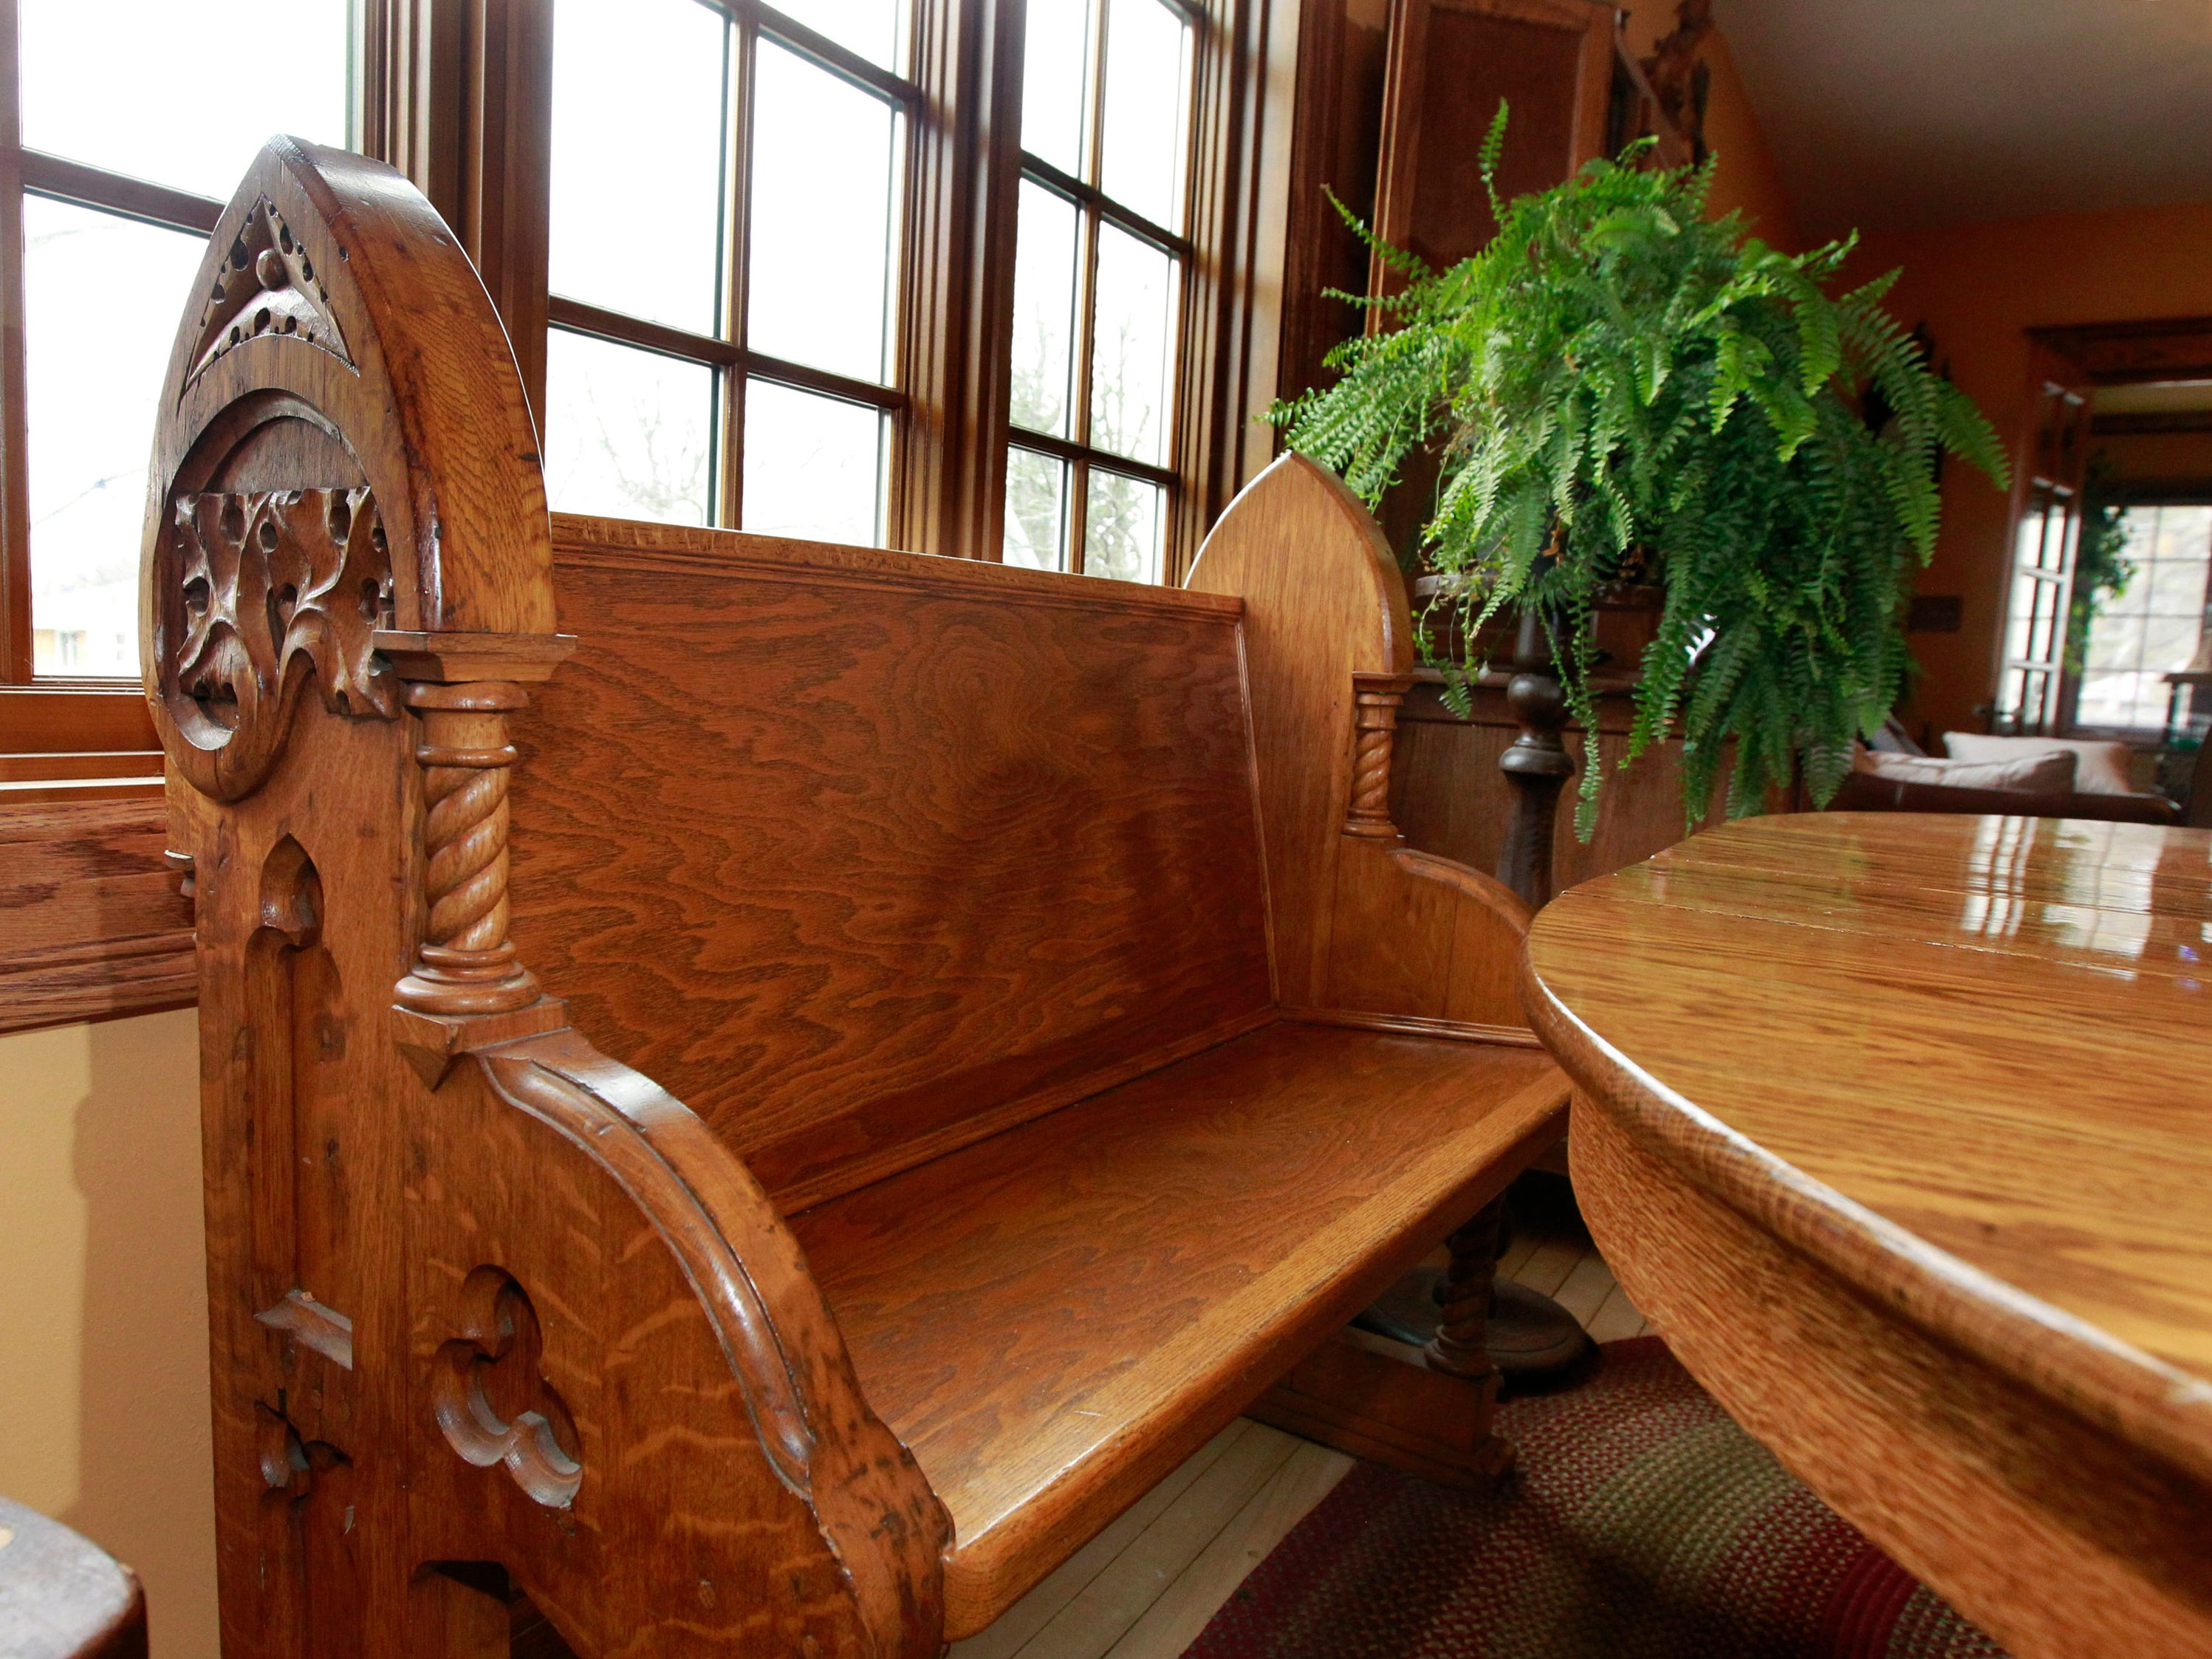 Scott Stephan found the sides from an antique church pew and added the seating to complete this bench for the dining room table.